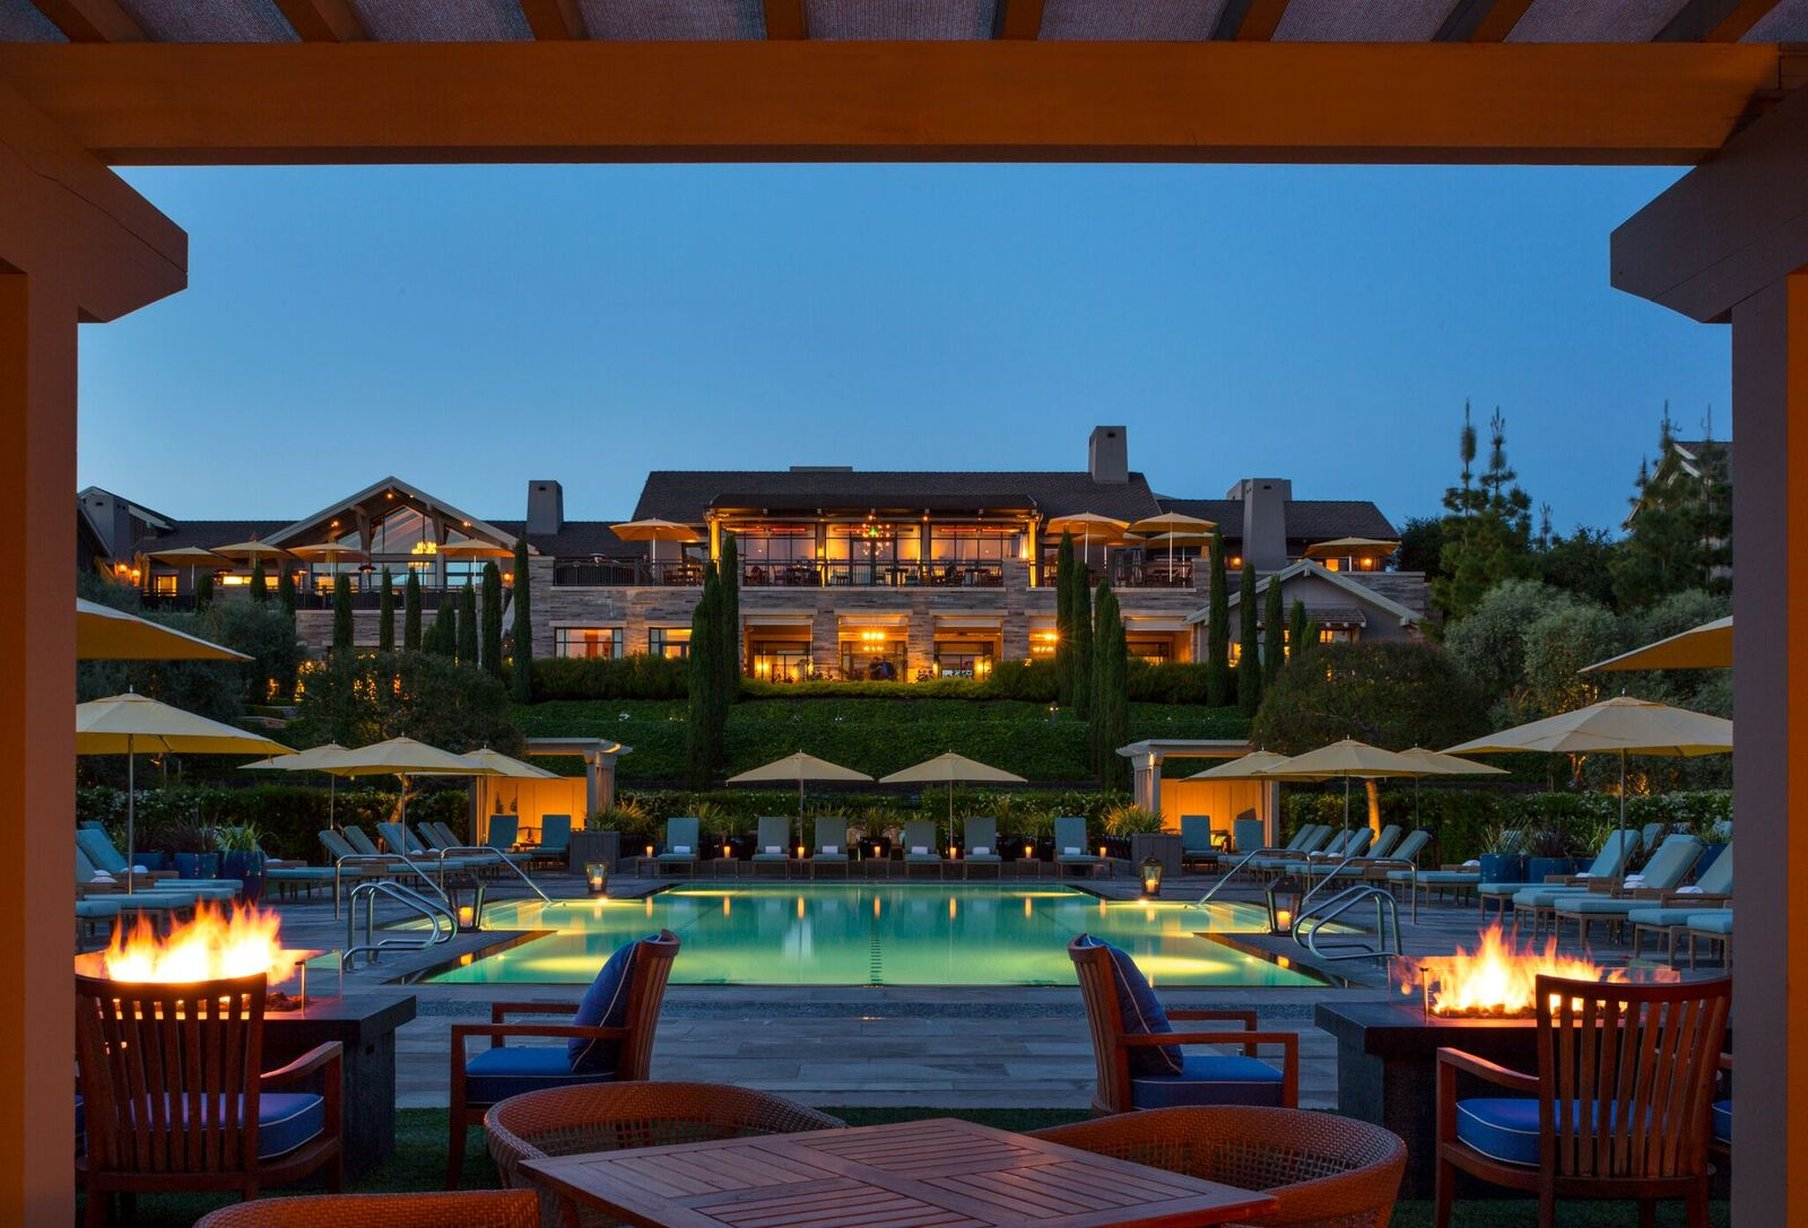 Meetings and events at Rosewood Sand Hill, Menlo Park, CA, US